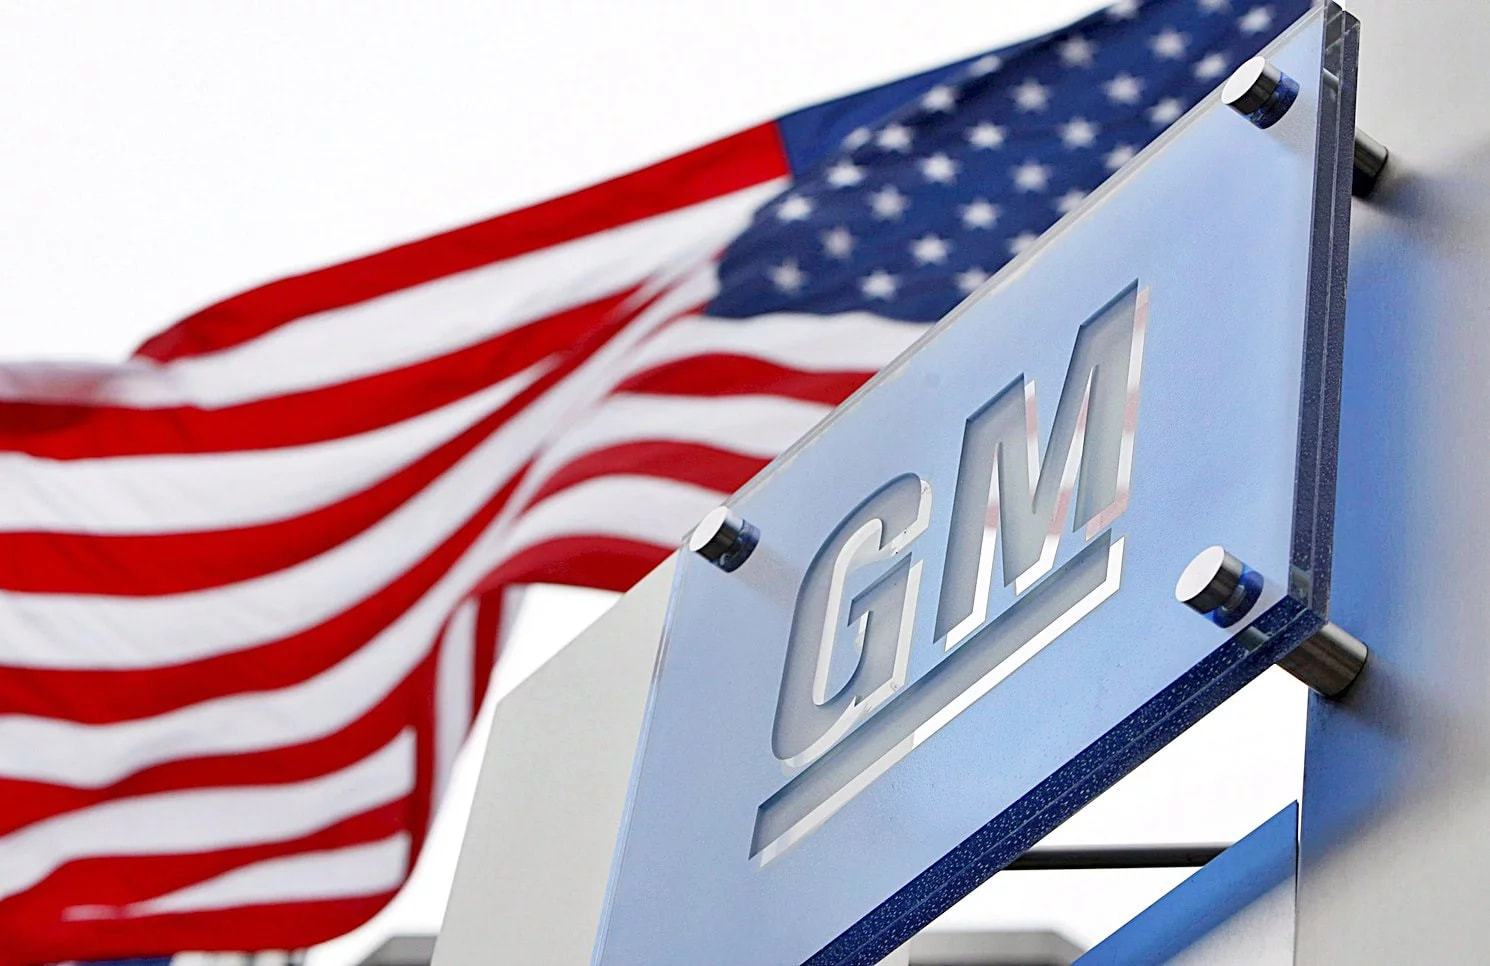 a company profile of general motors gm Home company profile index general motors (gm) company profile name: general motors website: phone: n/a email: n/a founded: n/a employees: n/a stage: seed (just an idea) location: address: n/a.